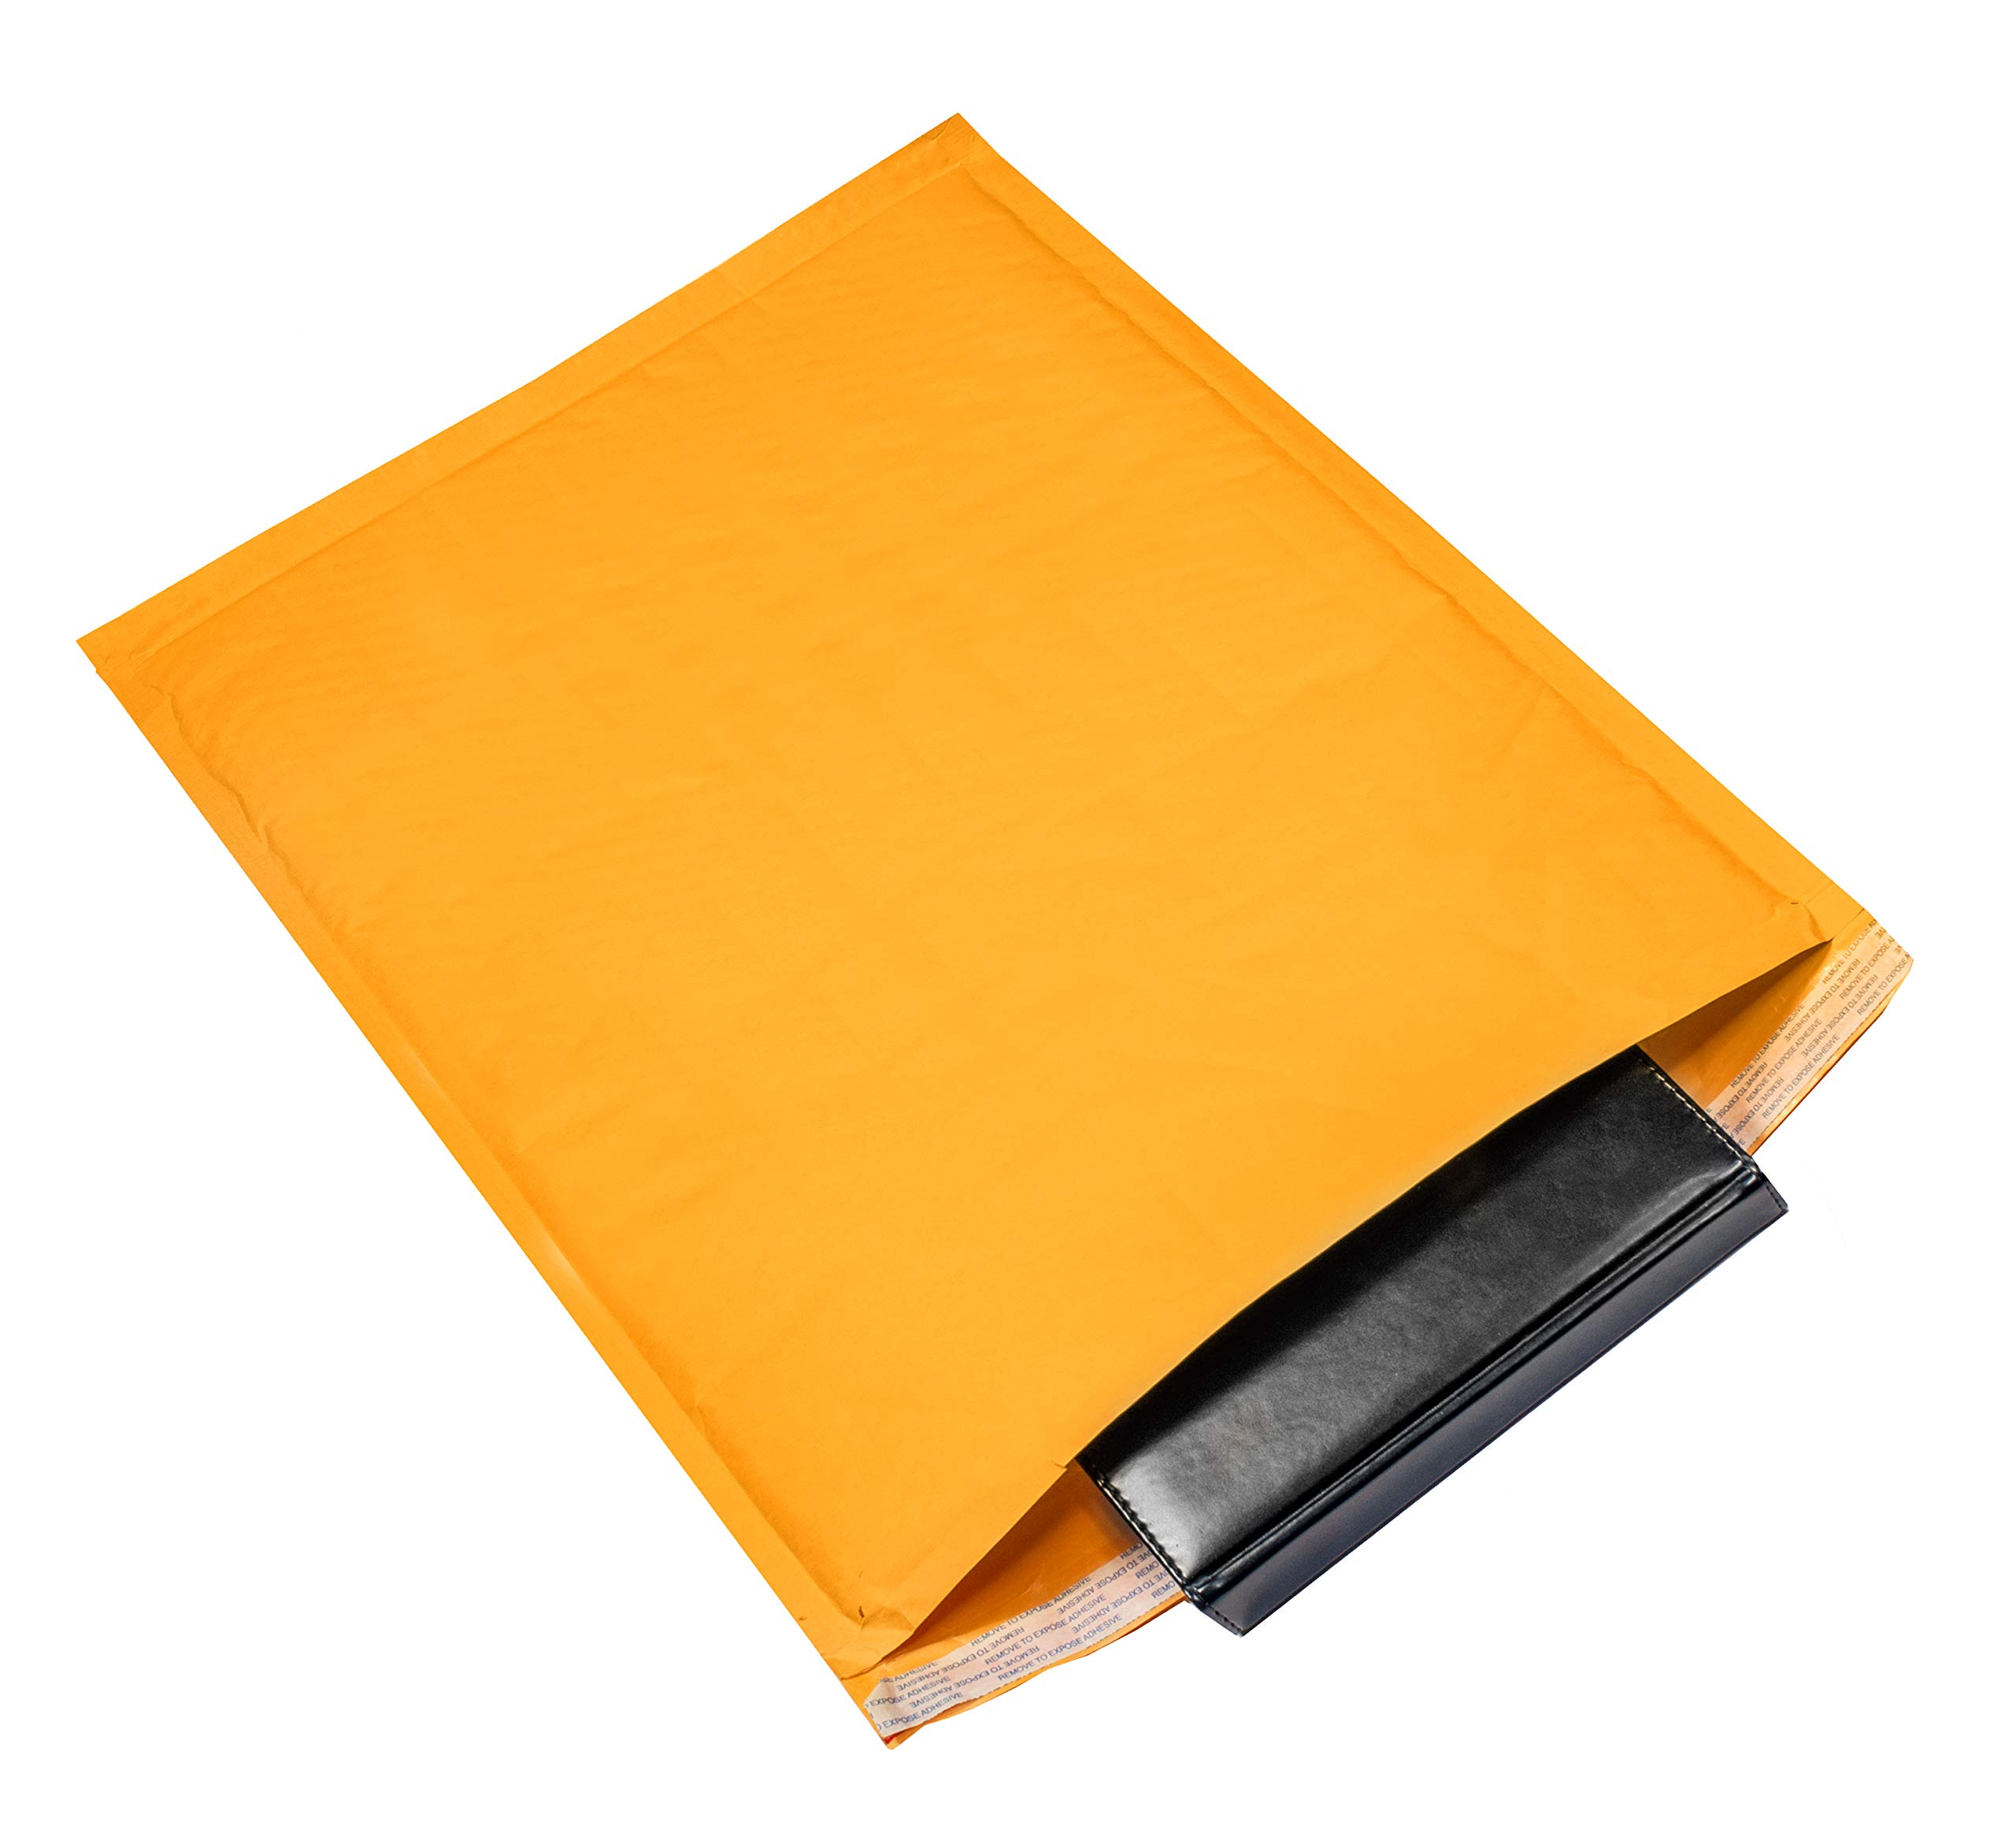 Kraft bubble mailers 14.25 x 19 Padded envelopes 14 1/4 x 19 by Amiff. Pack of 10 Kraft Paper cushion envelopes. Exterior size 14.5 x 20 (14 1/2 x 20). Peel & Seal. Mailing & shipping & packing. by Amiff (Image #9)